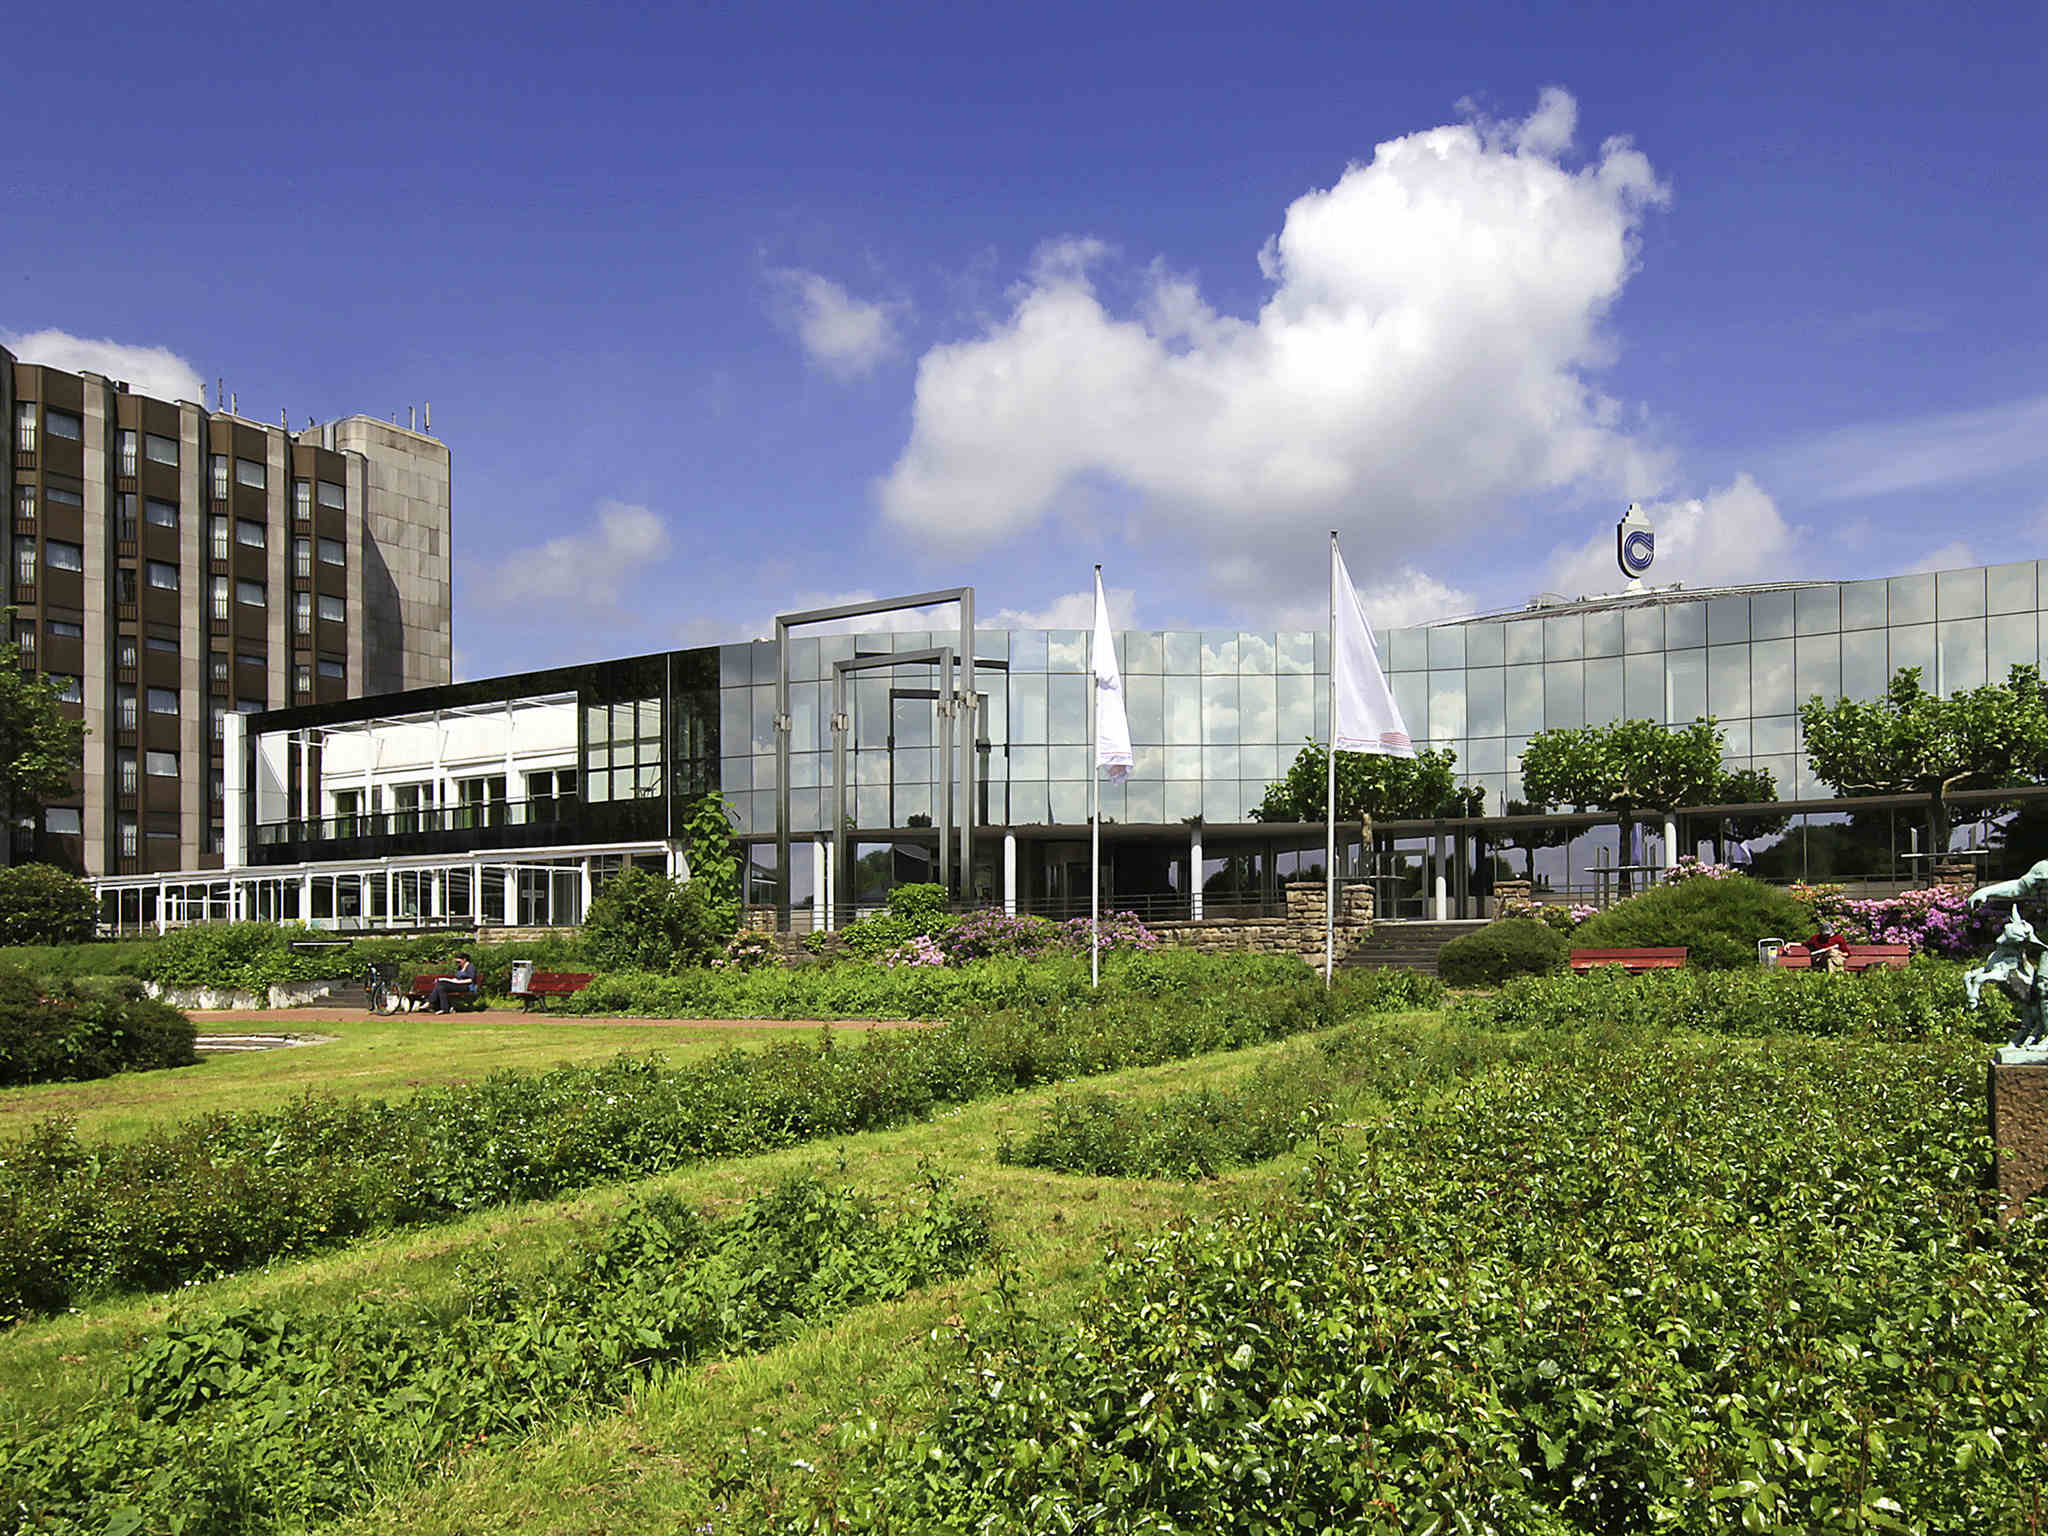 Otel – Mercure Hotel Dortmund Messe & Kongress